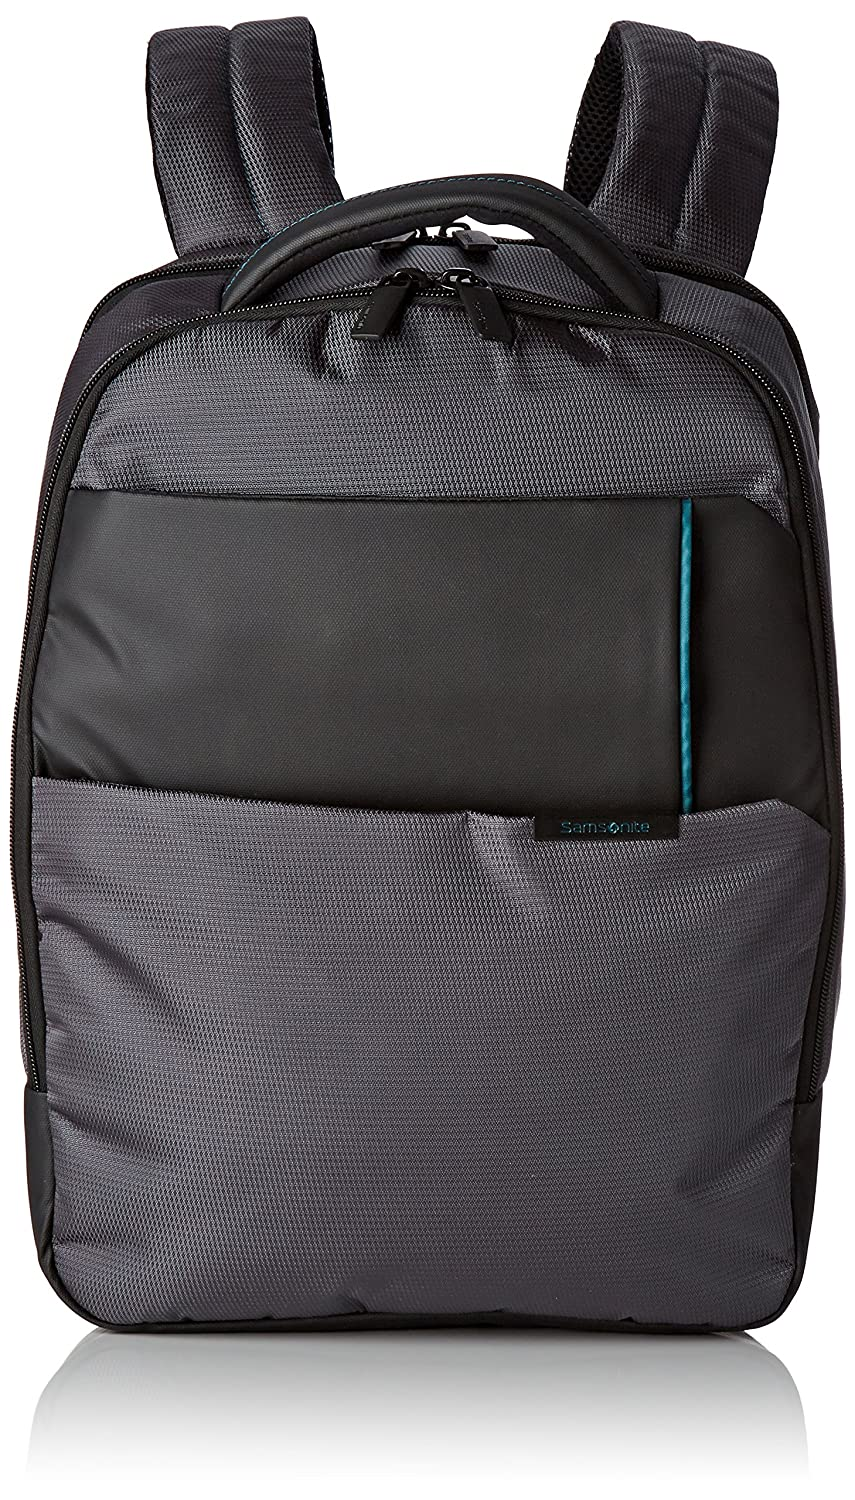 Samsonite Qibyte Laptop Backpack  Mochila Tipo Casual  Litros Color Antracita